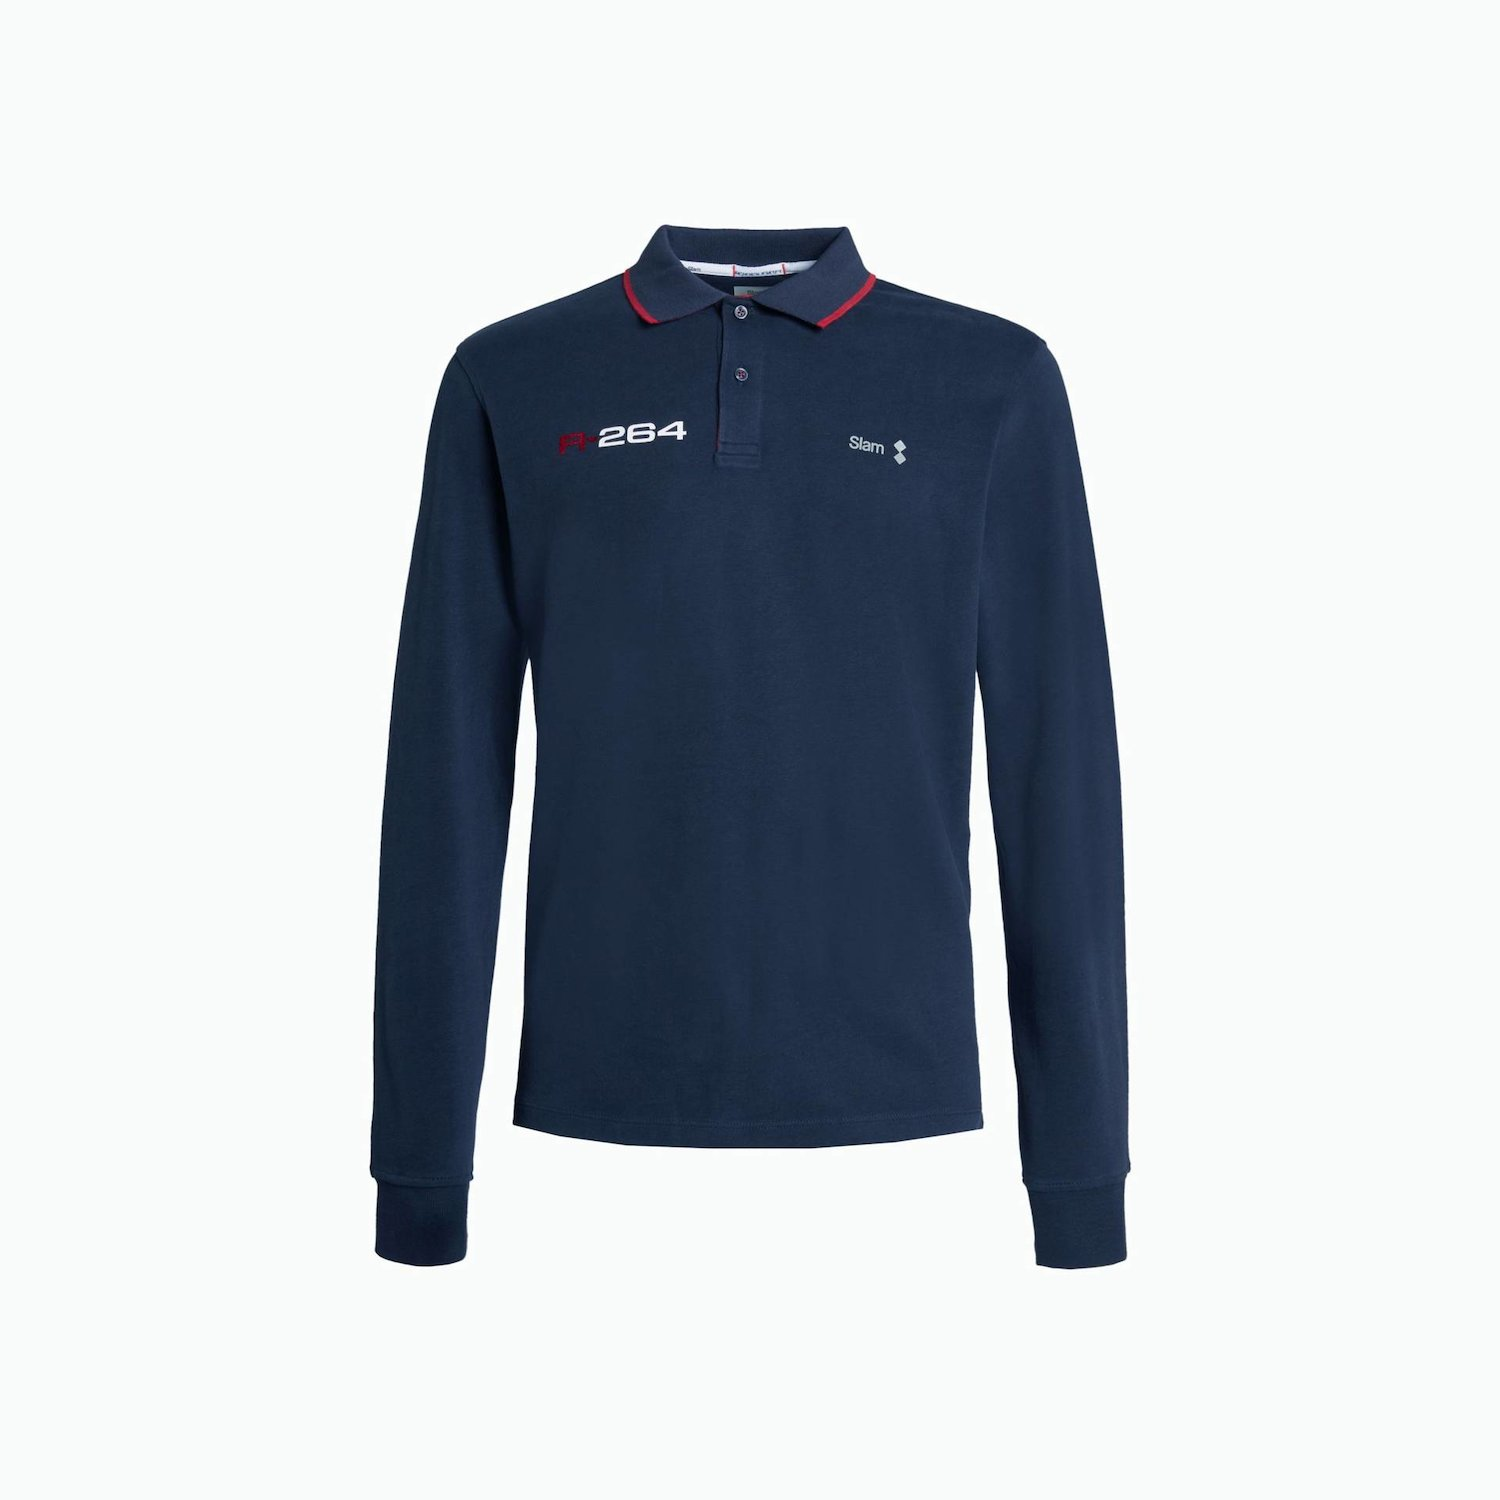 New Wake polo shirt - Navy